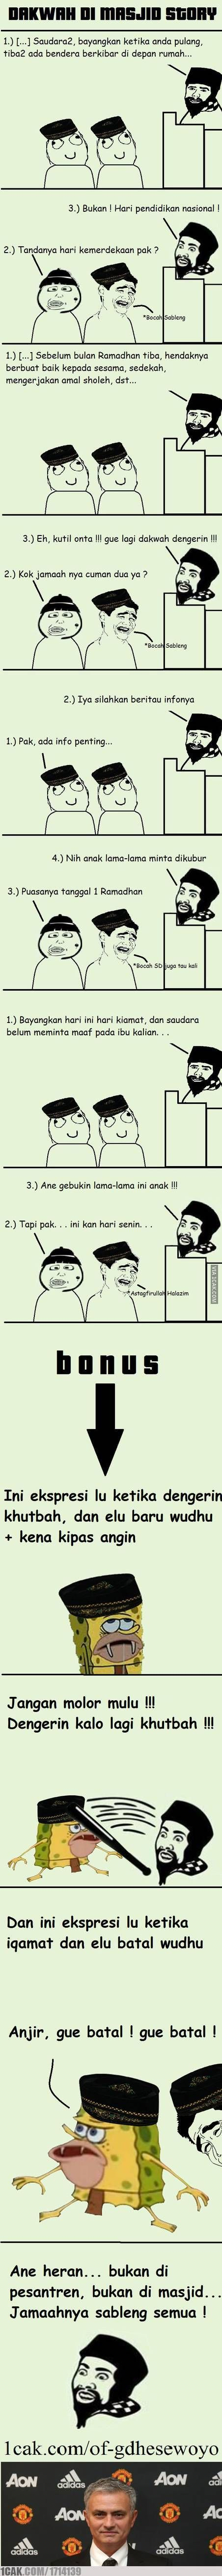 17 Best Images About Meme Indonesia Lucu V V On Pinterest